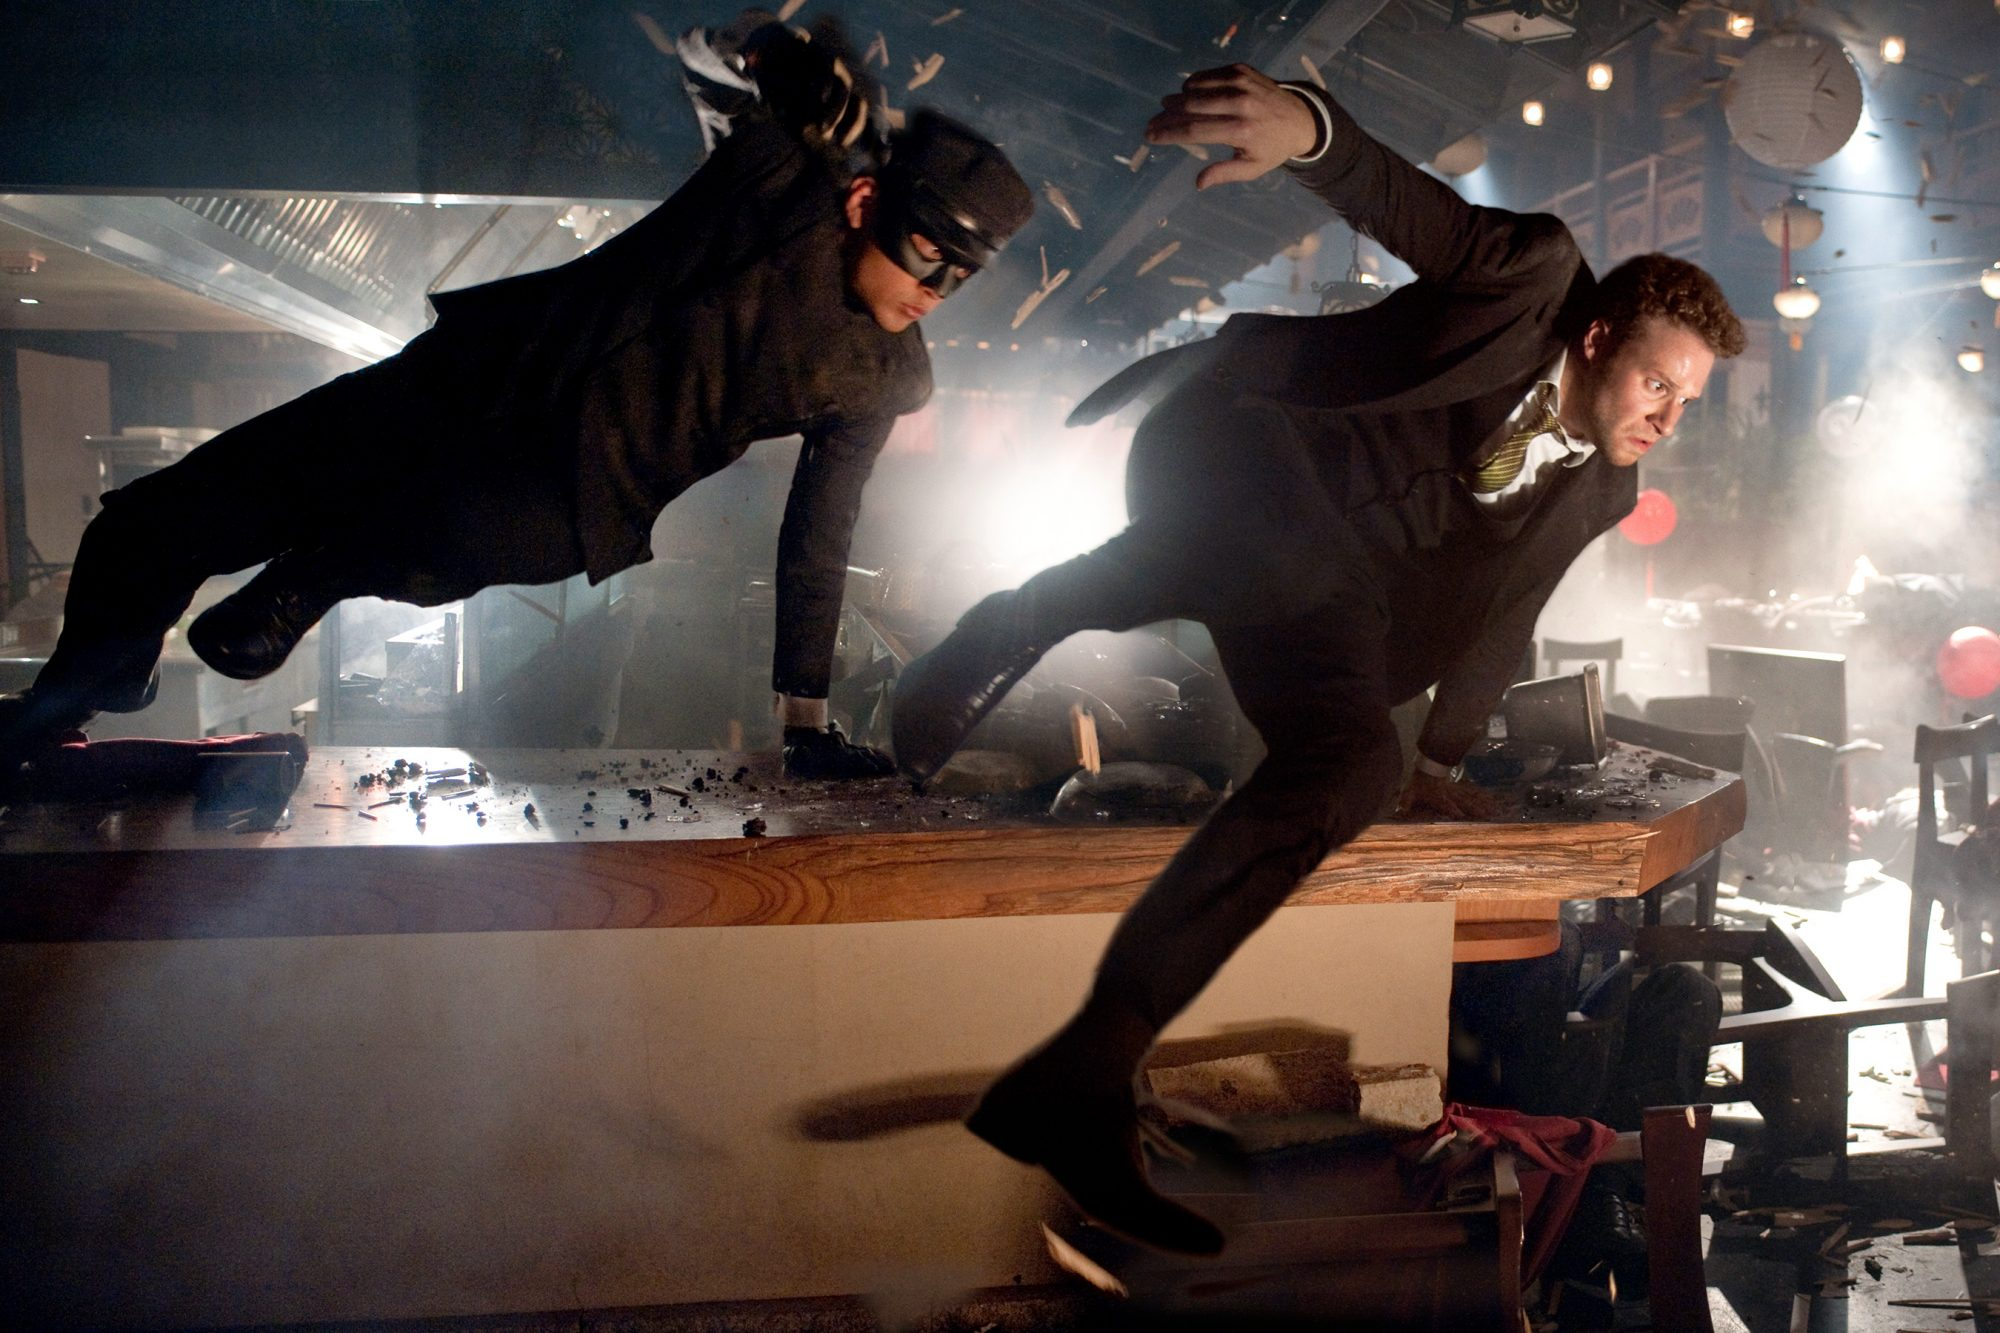 15. Seth Rogen and Jay Chou in The Green Hornet (2011)